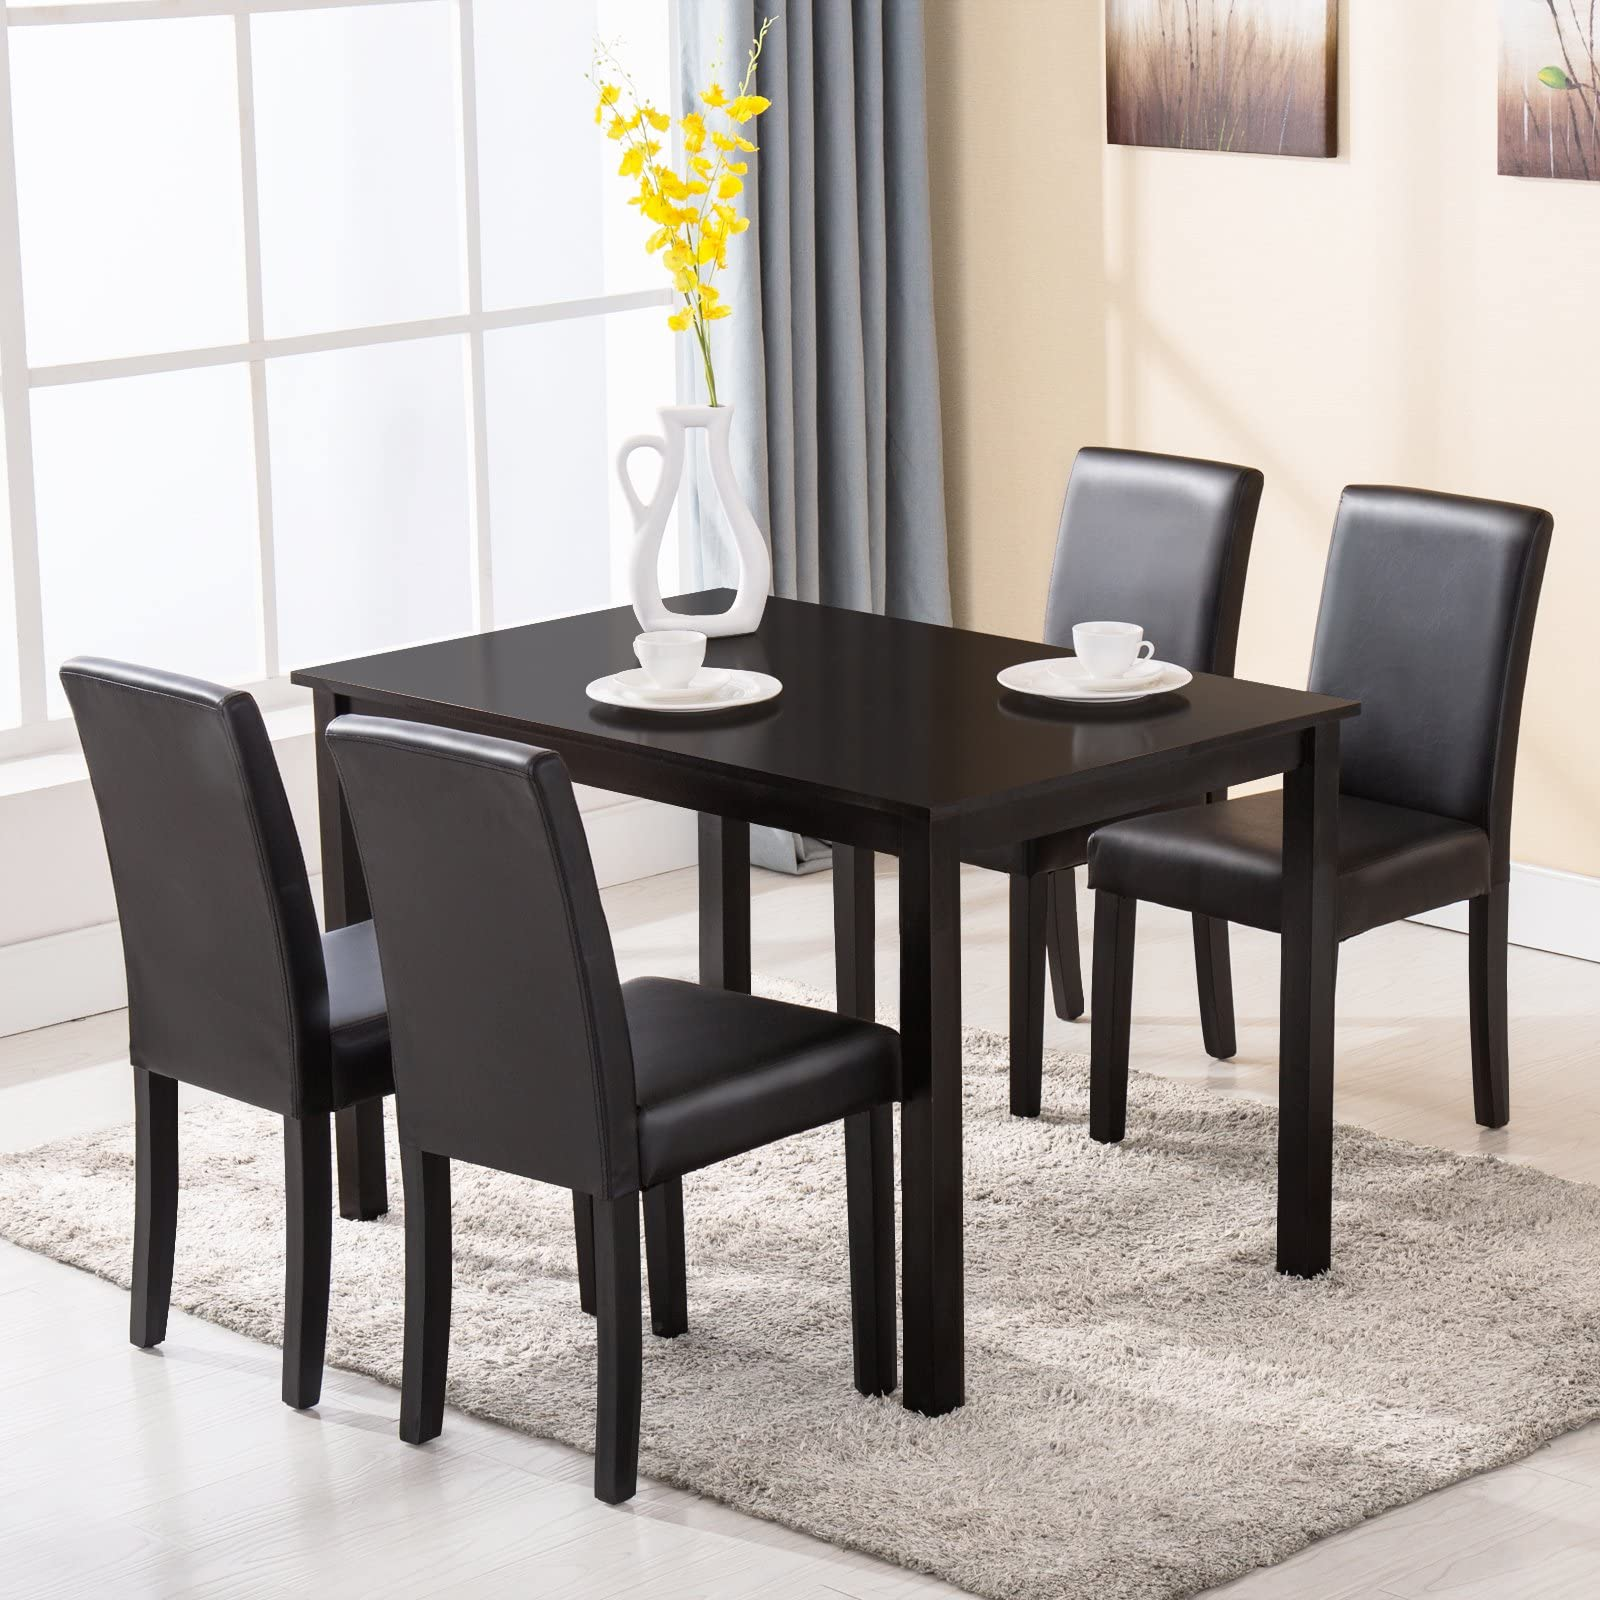 Mecor 5 Piece Dining Table Set Wood Table/4 Leather Chairs Kitchen Room Breakfast Furniture  sc 1 st  Amazon.com : kitchenette table sets - pezcame.com